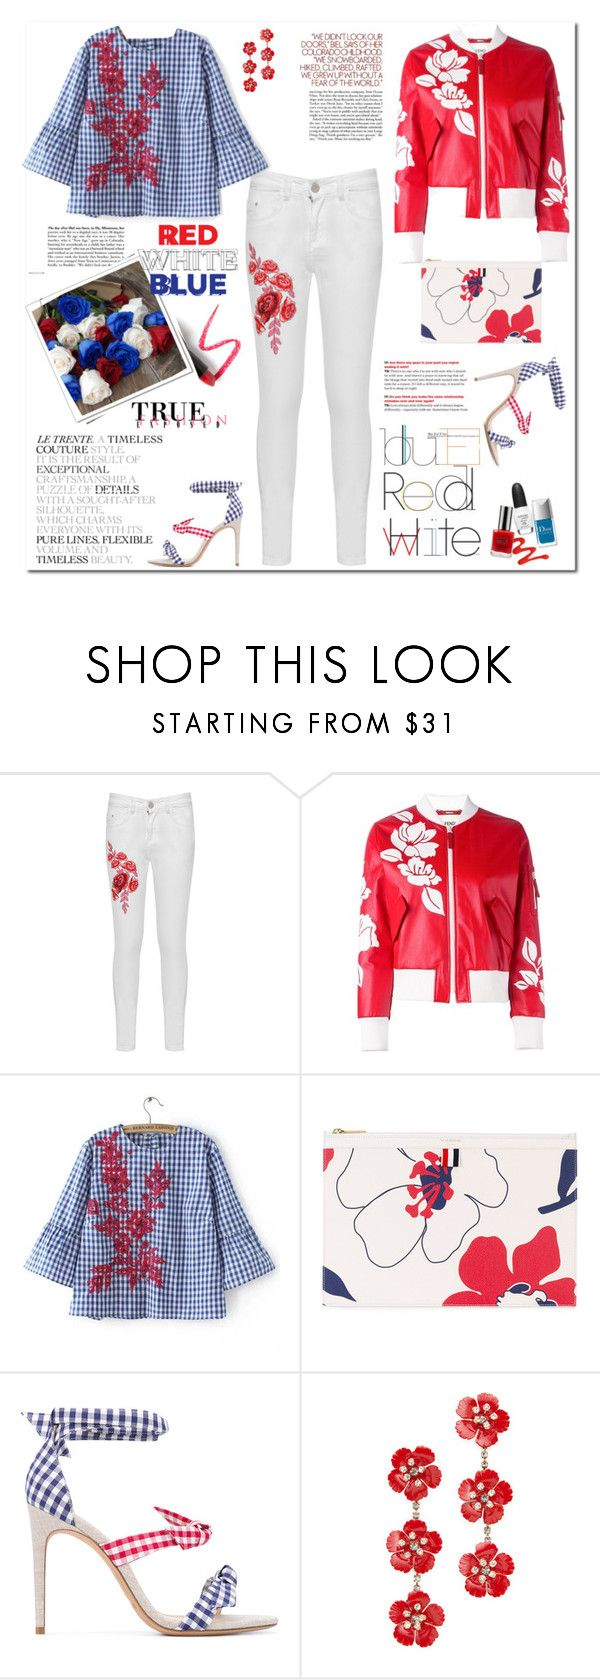 """Red,white and blue flowers"" by ellie366 ❤ liked on Polyvore featuring WearAll, Fendi, WithChic, Thom Browne, Alexandre Birman, SAM., Jennifer Behr, Lapcos, embroidered and whitedenim"